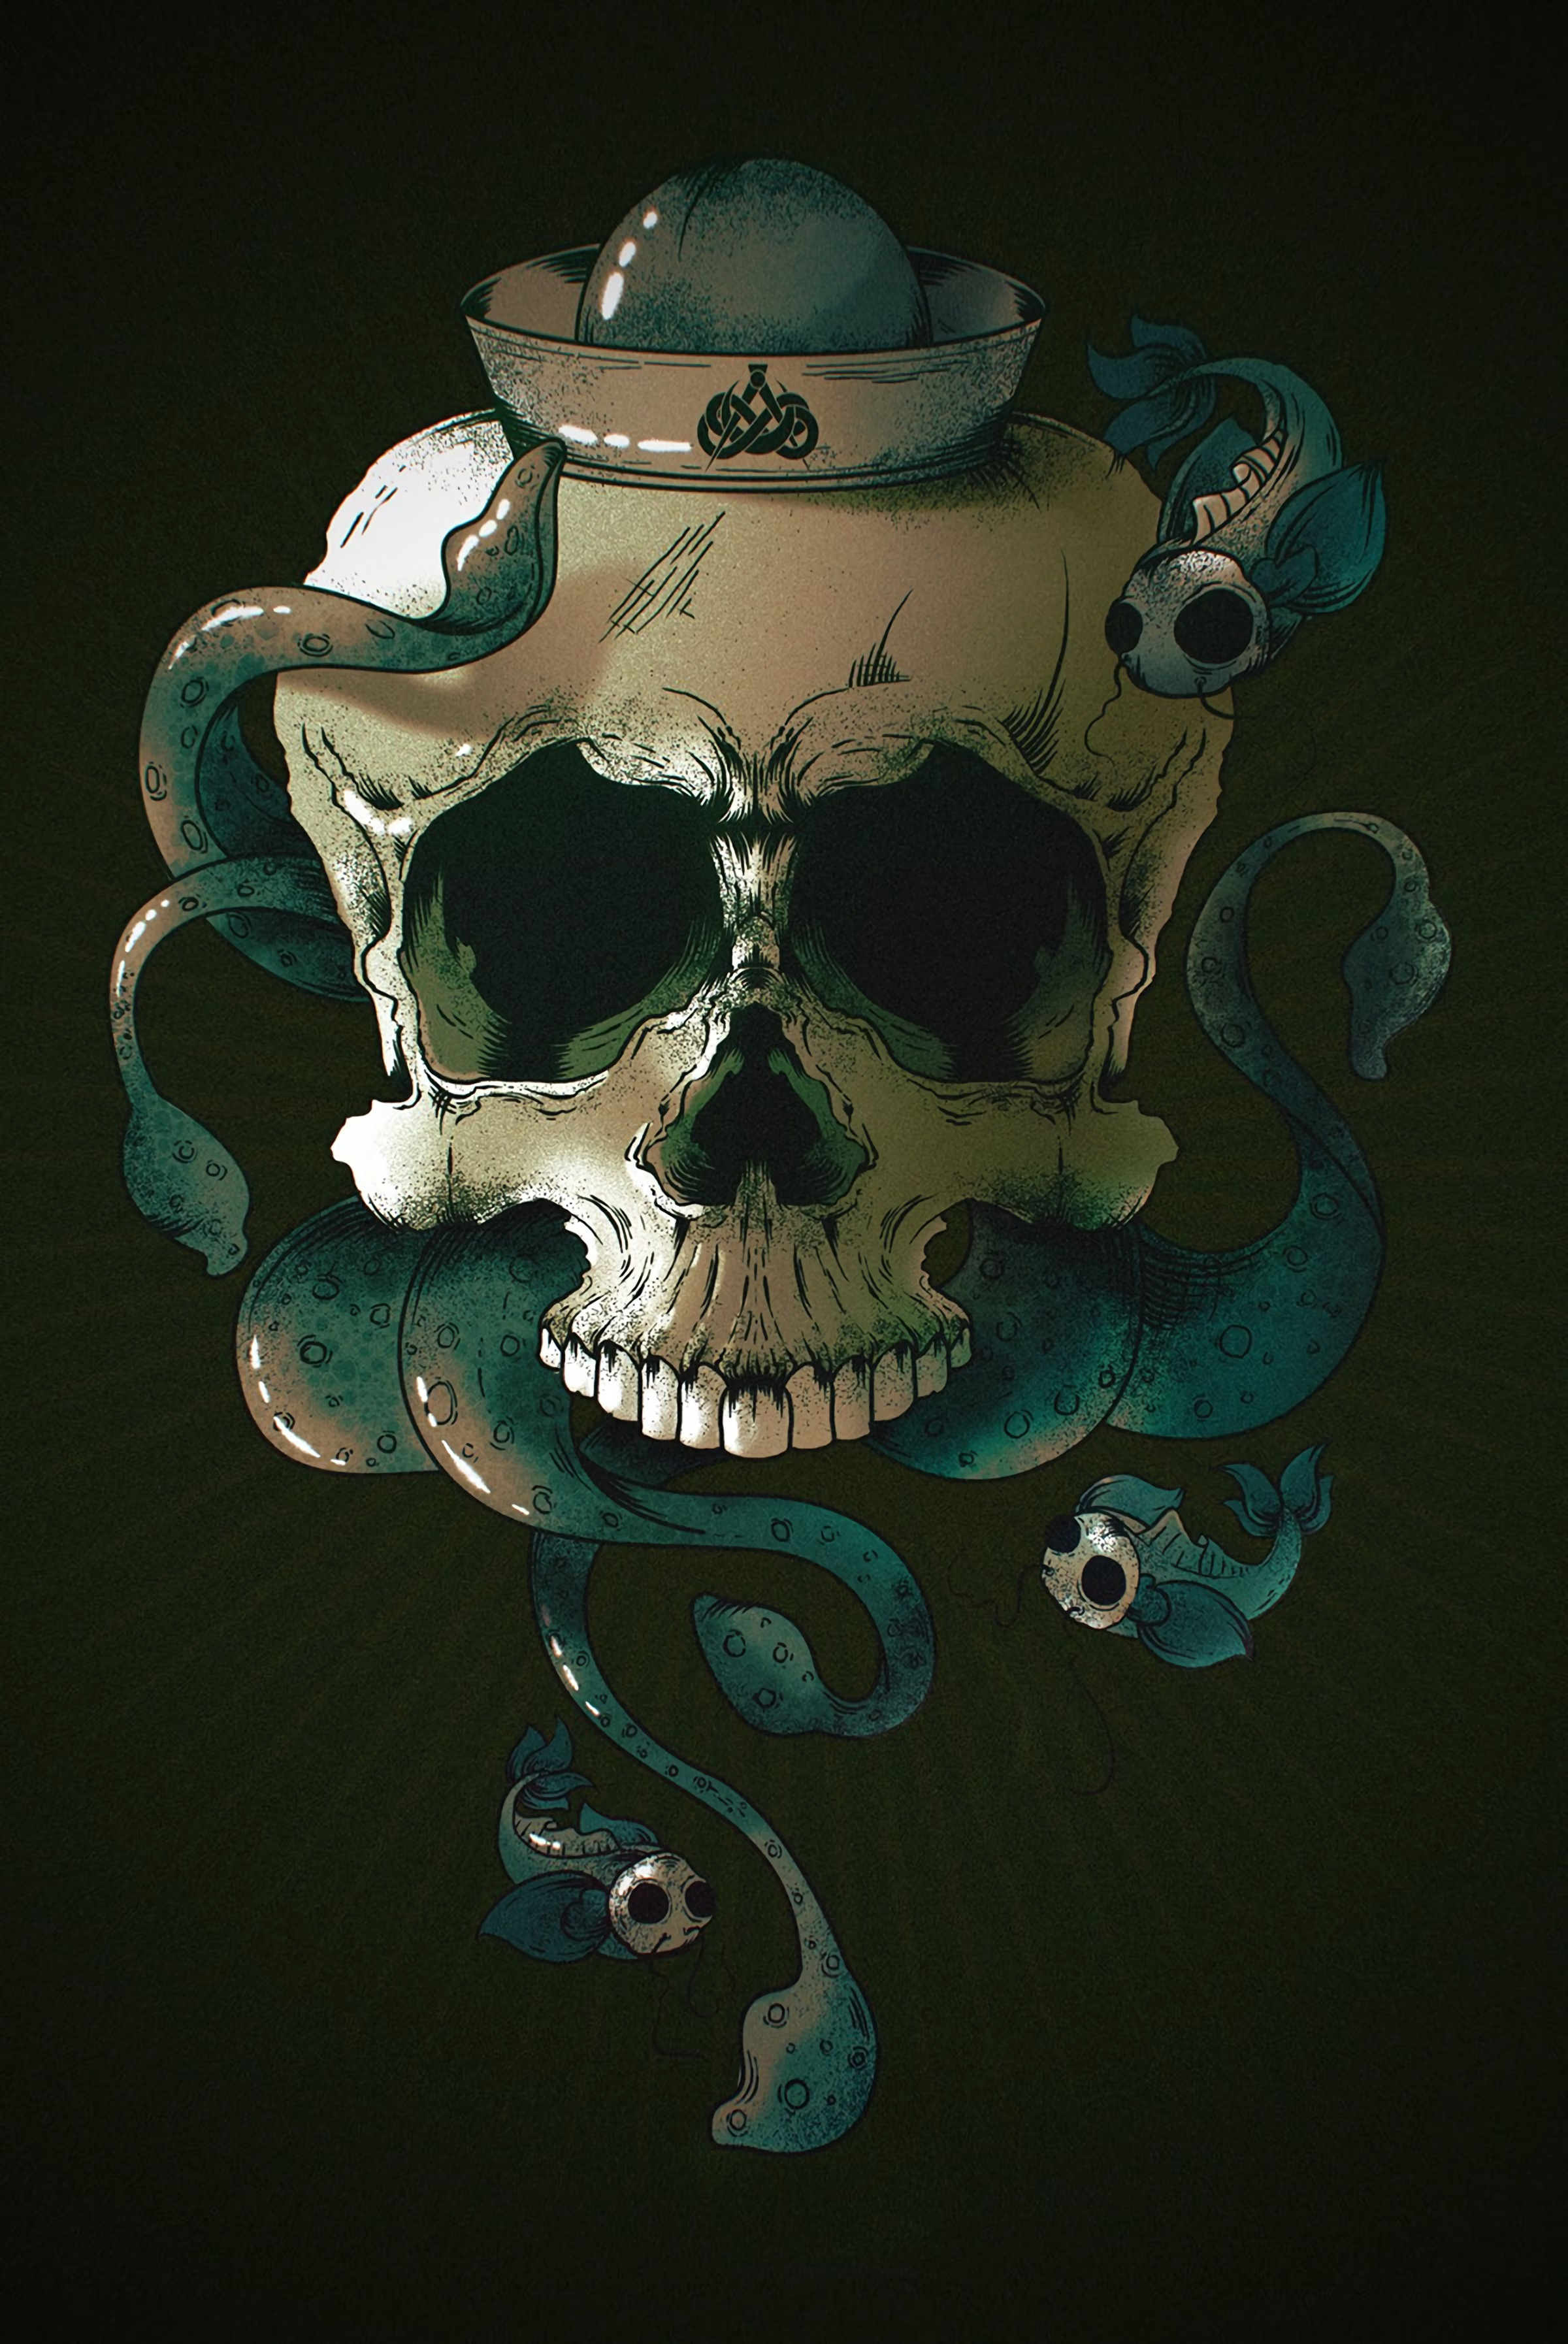 142836 download wallpaper Art, Fishes, Skull, Skeleton screensavers and pictures for free